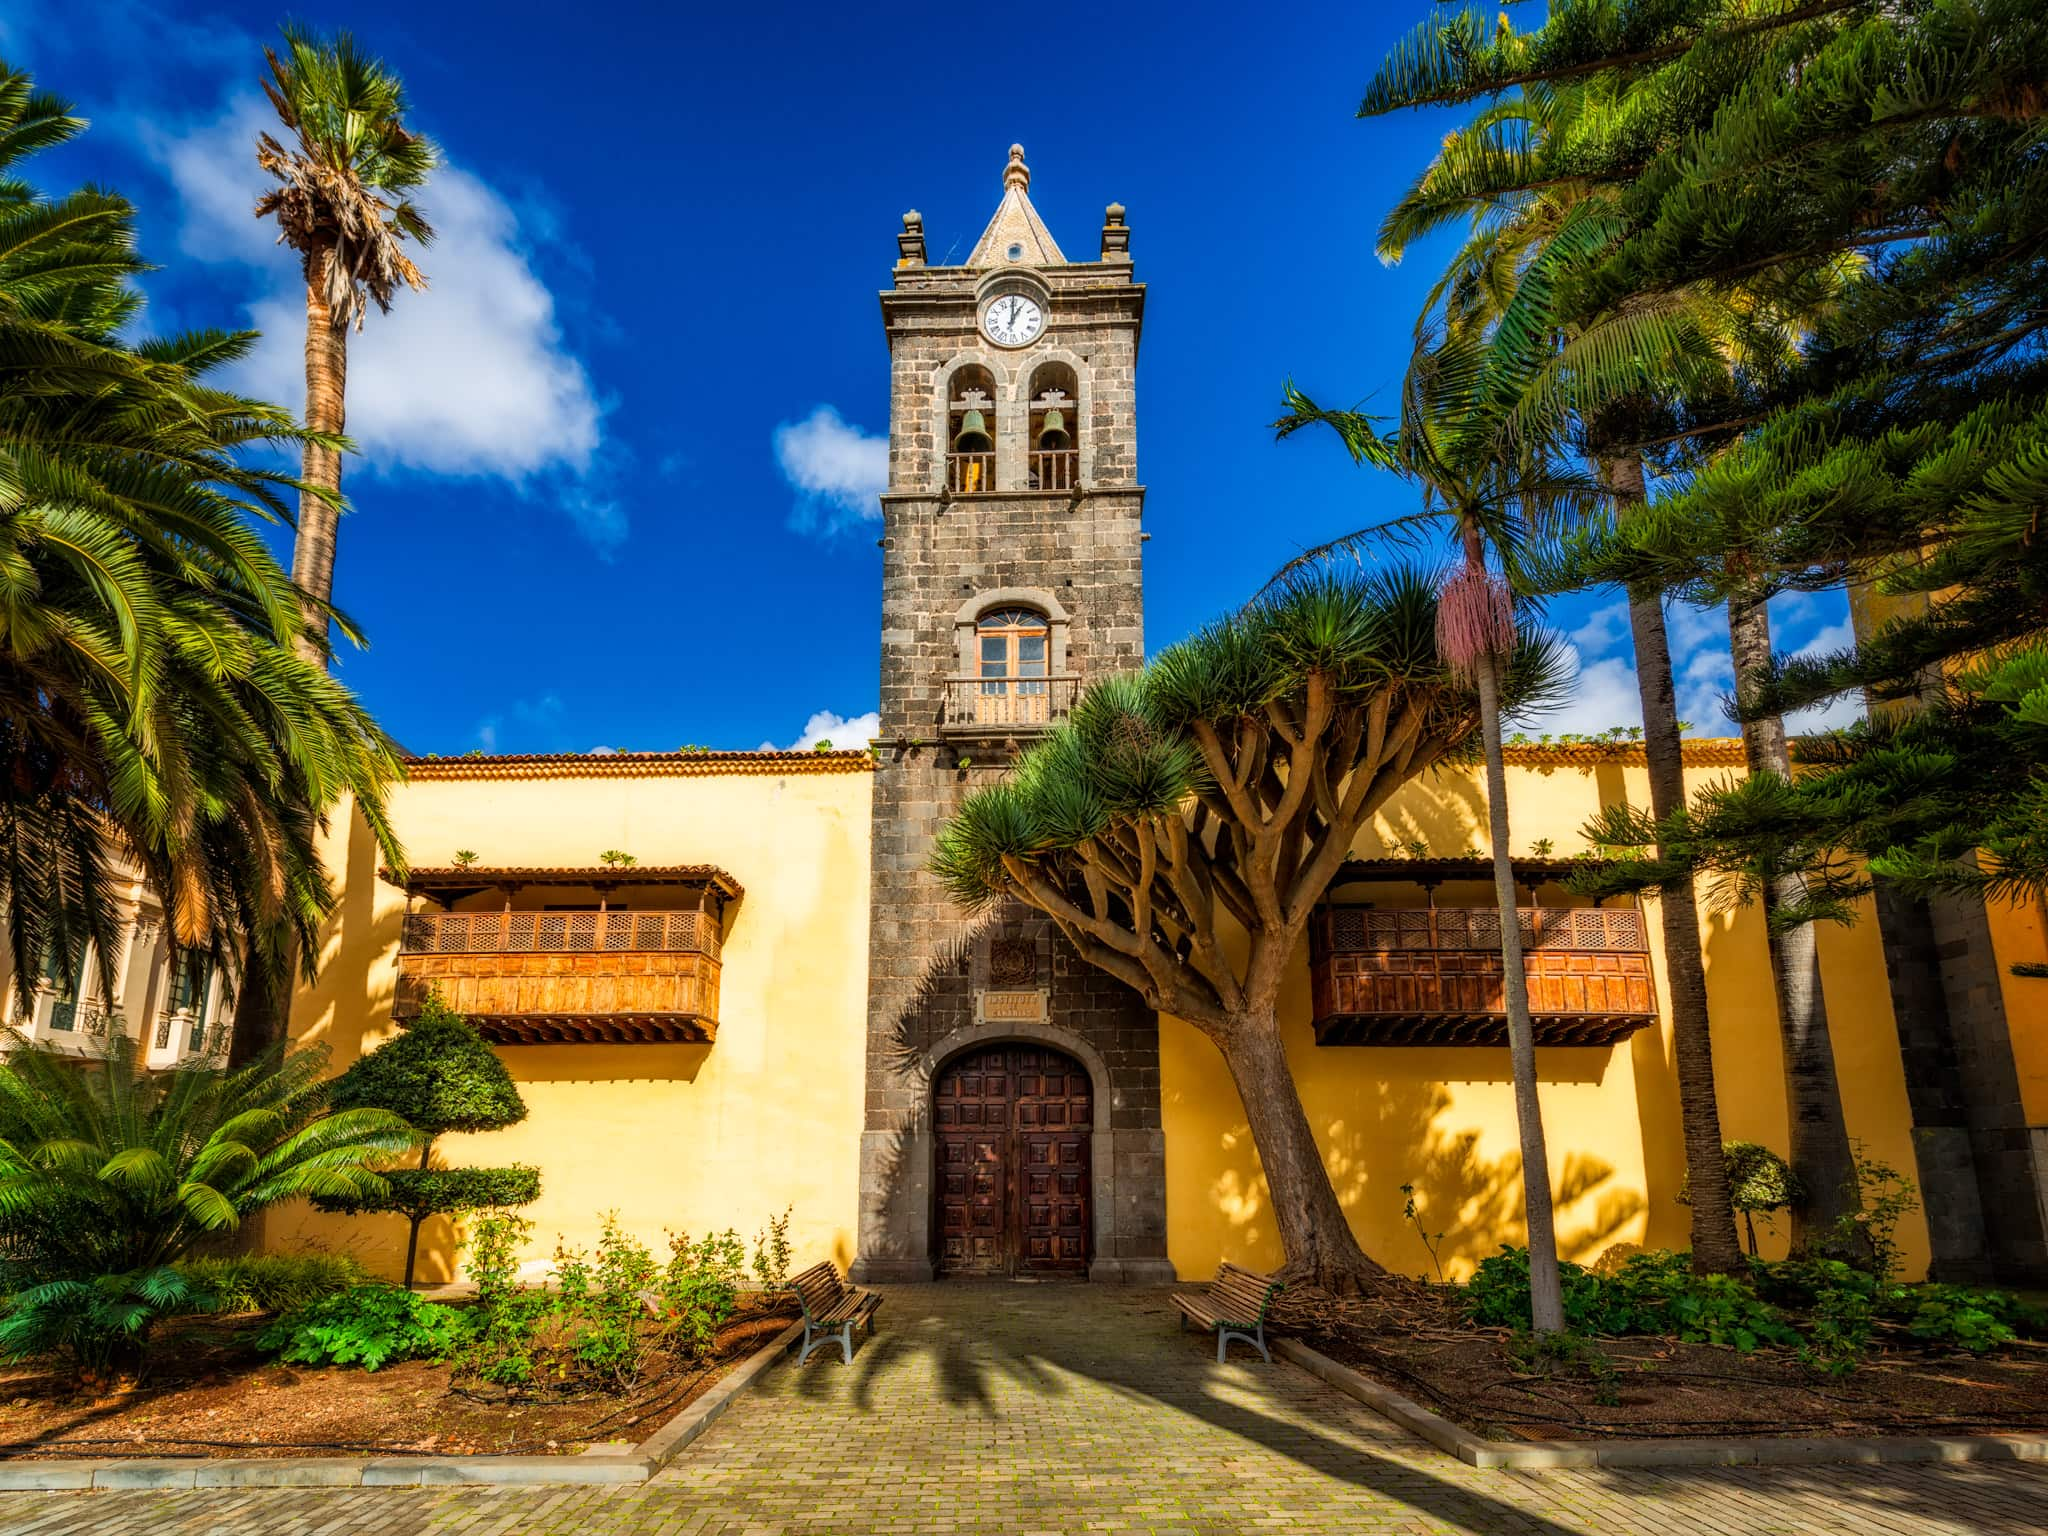 Canary Islands Instituto Cabrera Pinto (previously University), San Cristóbal de la Laguna, Tenerife, Spain.